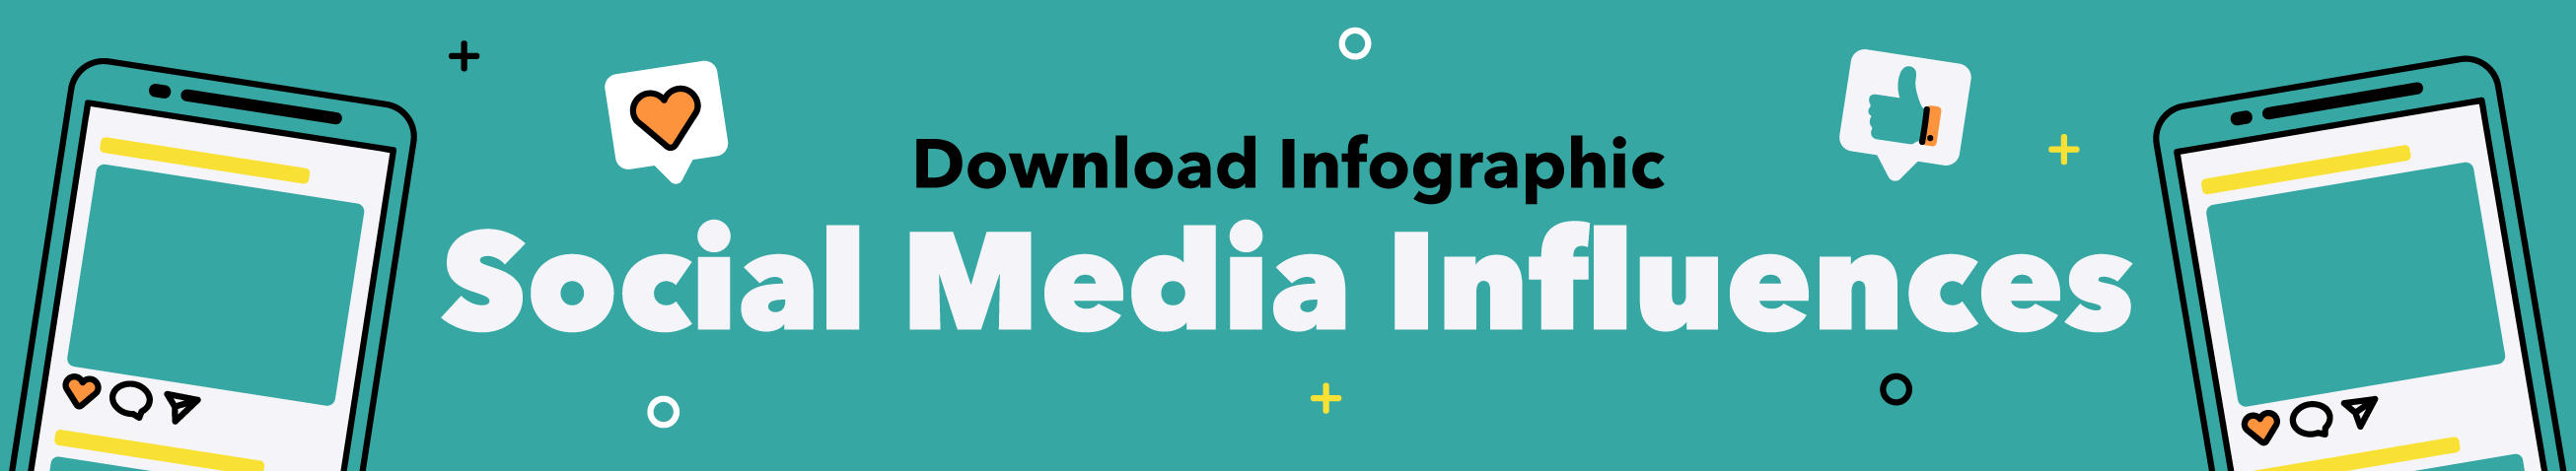 View the Social Media Influences infographic